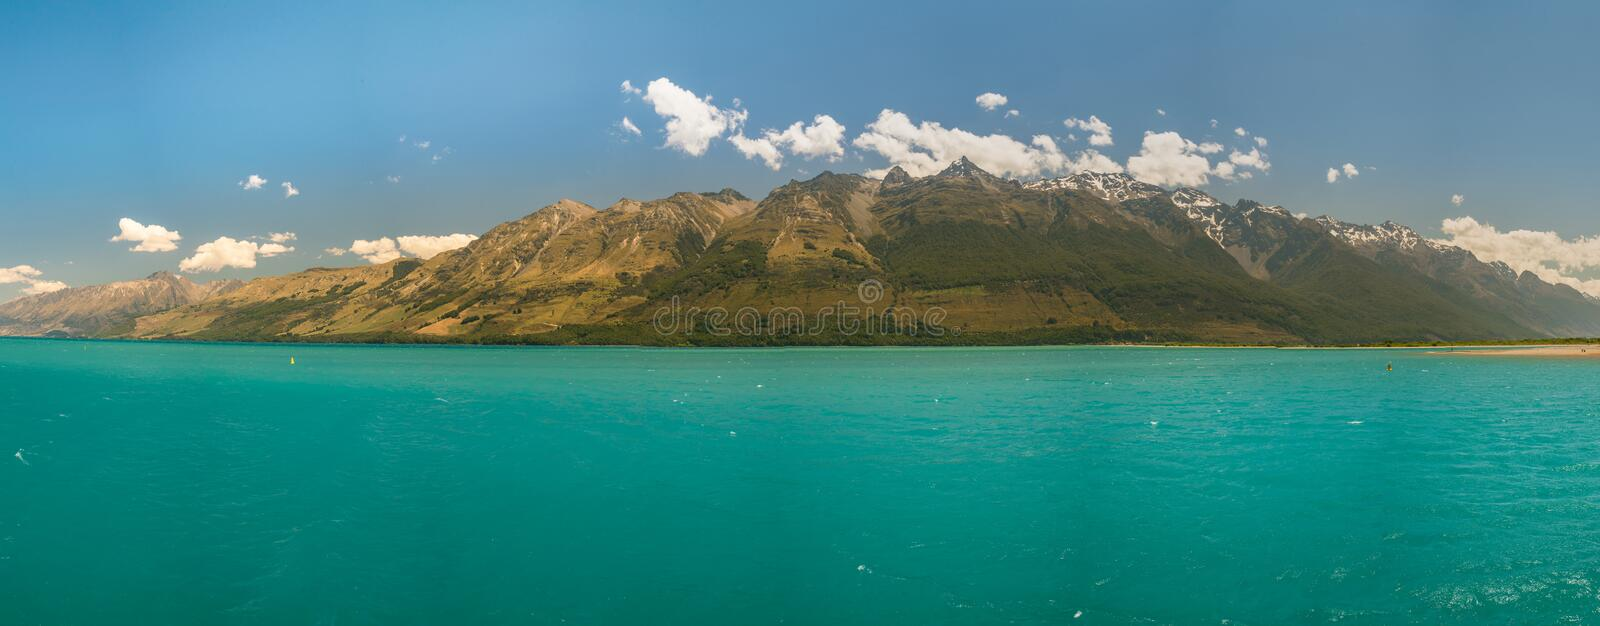 New Zealand mountain and blue lake against sky. Natural landscape background panorama view royalty free stock image